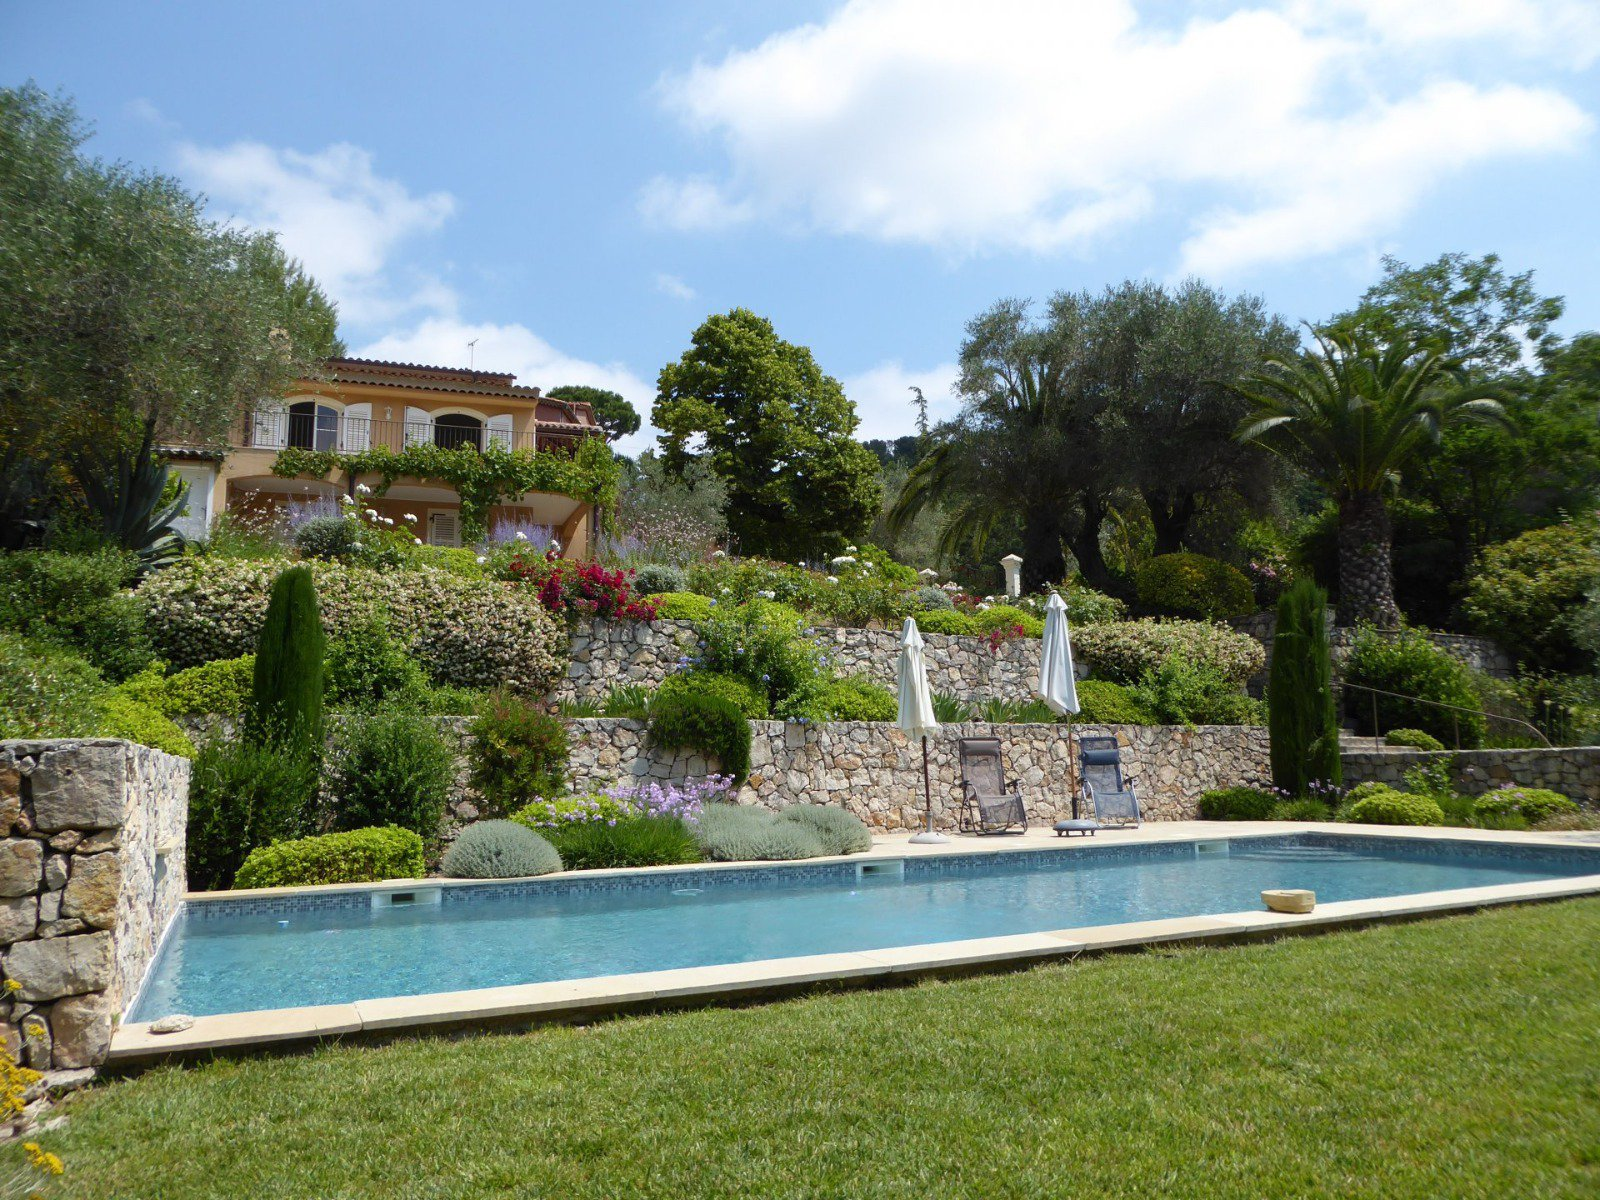 5 ROOMS VILLA IN MOUGINS